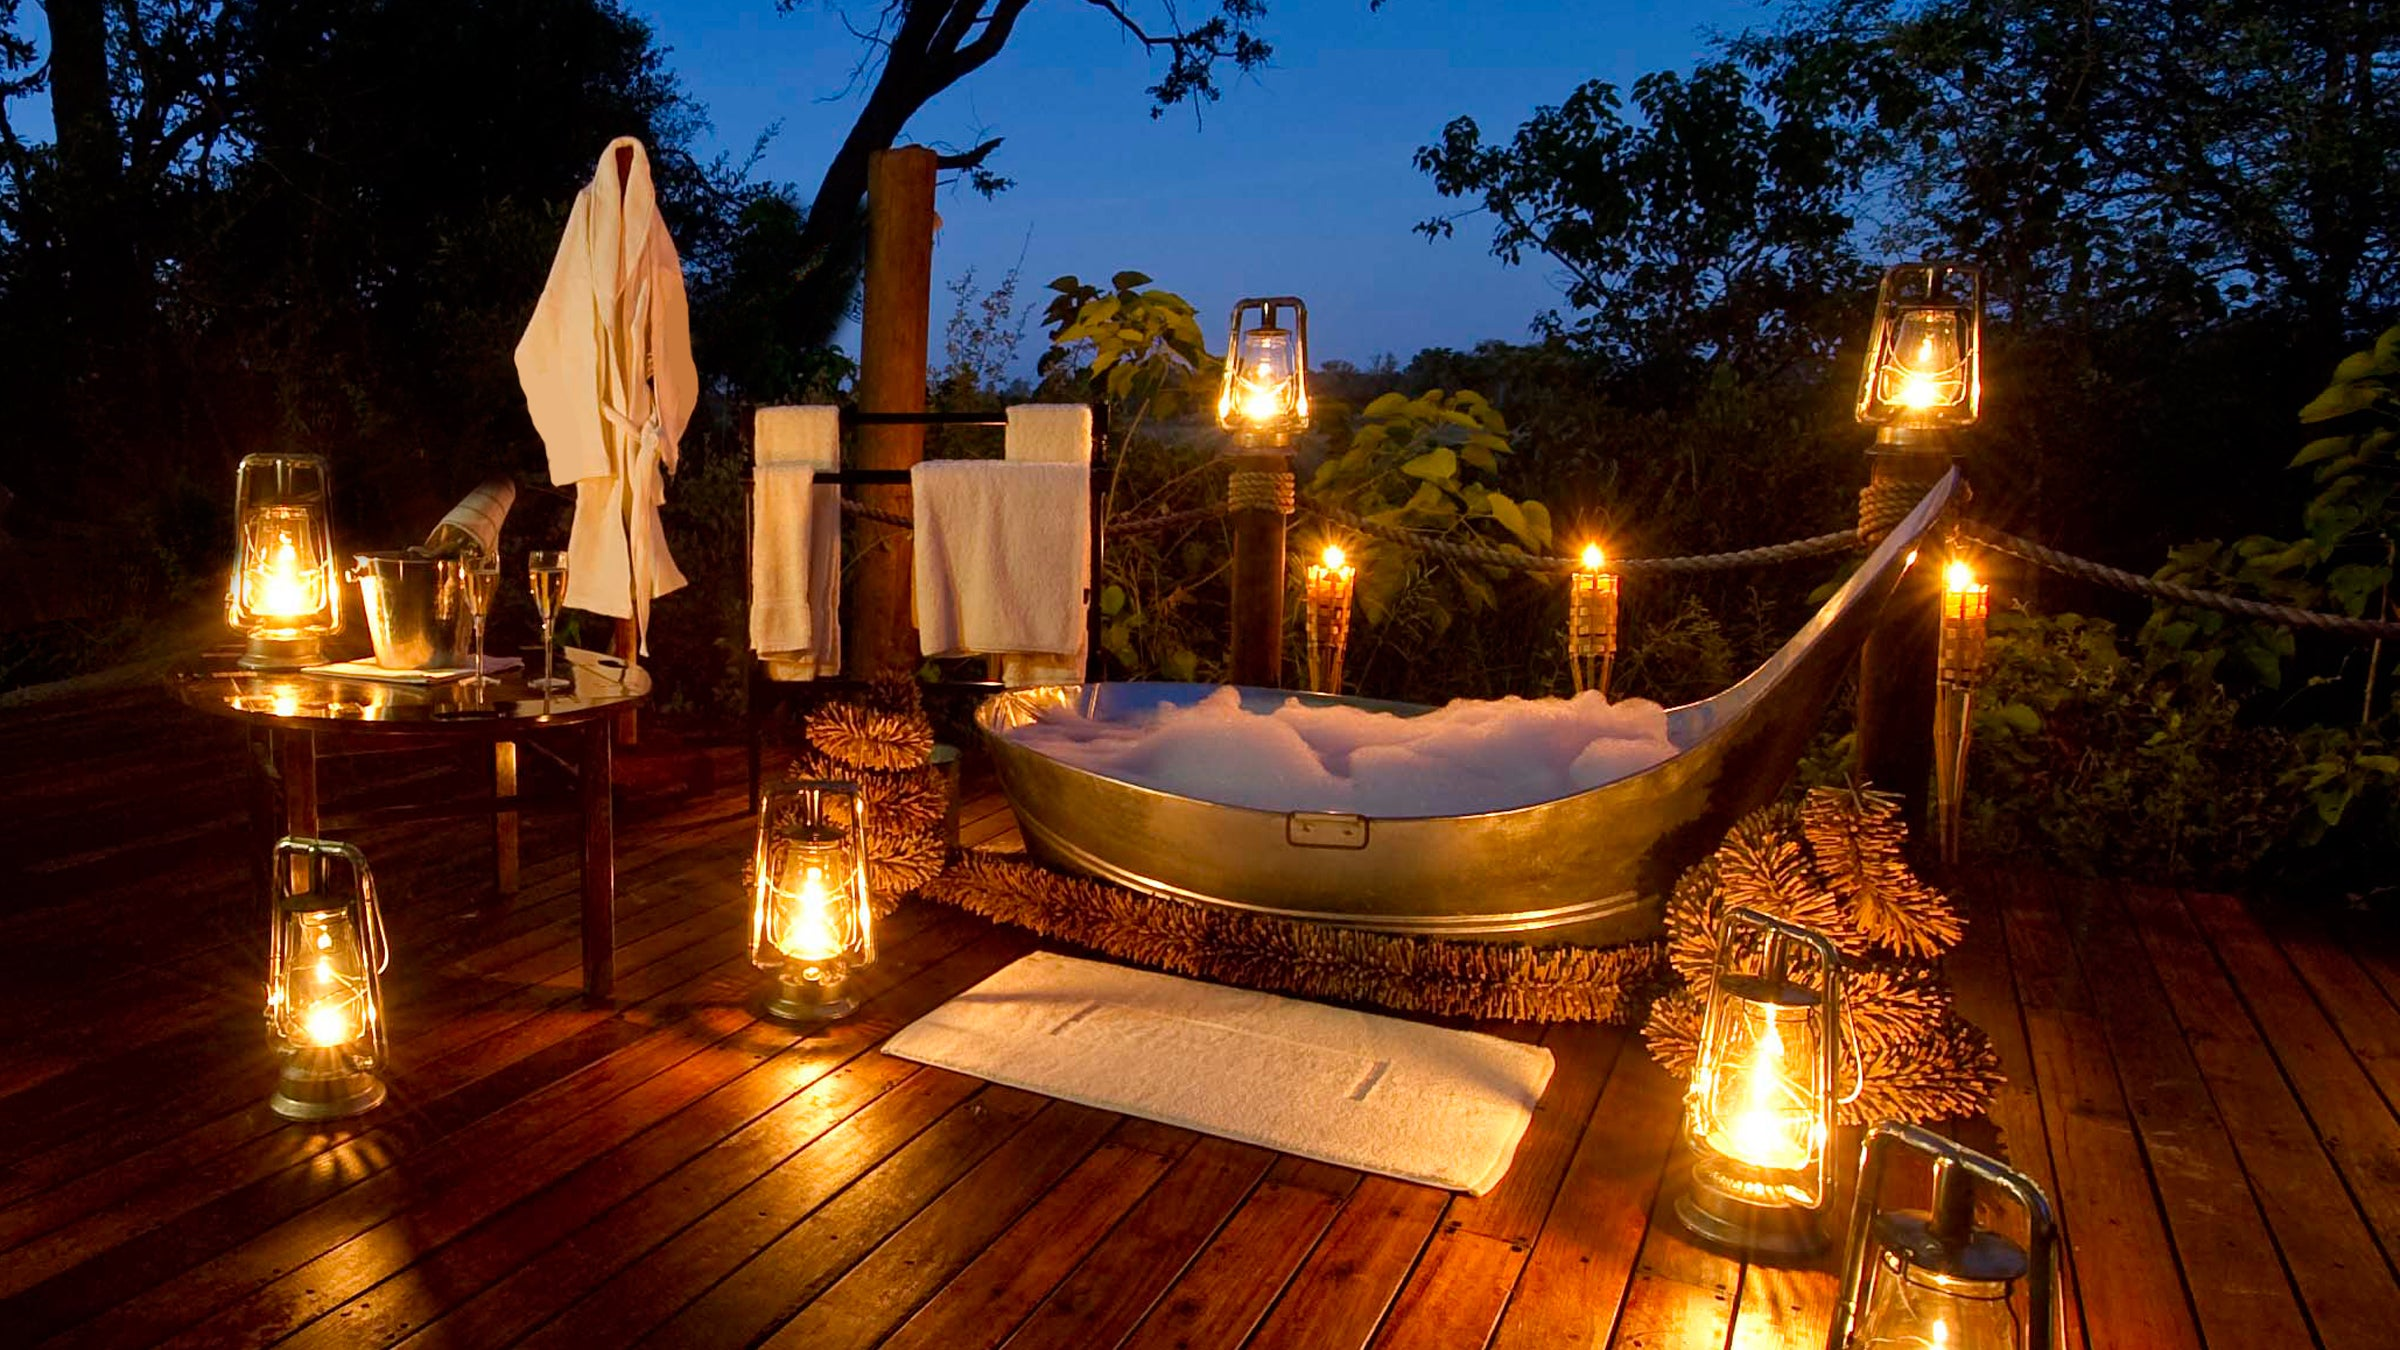 The World S Best Outdoor Bathtubs Outside Online